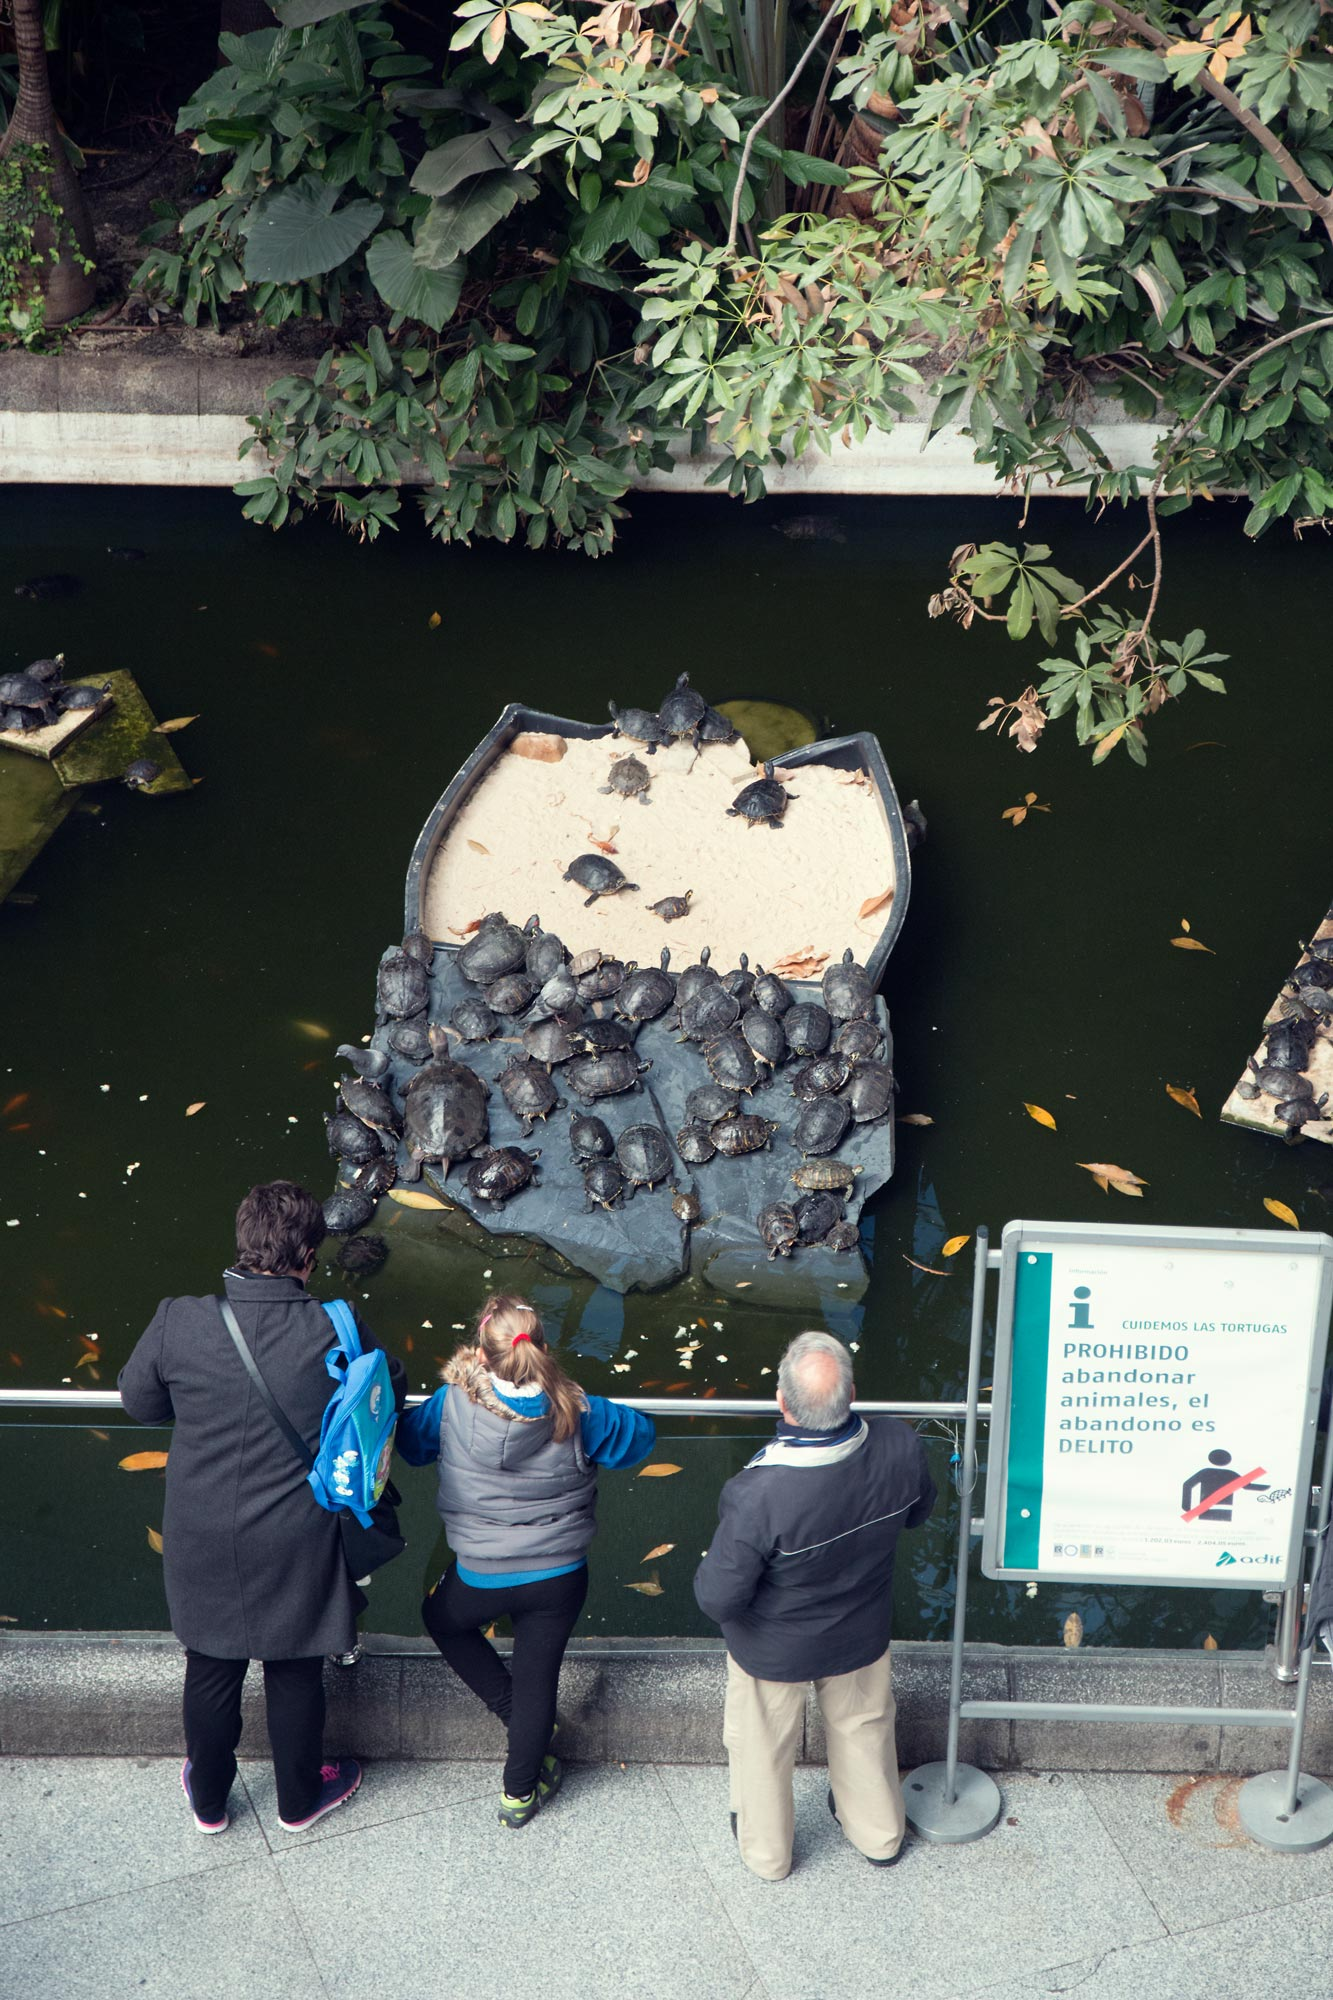 Terrapins in the Tropical Gardens at Madrid Train Station. Don't leave you're own Terrapin!